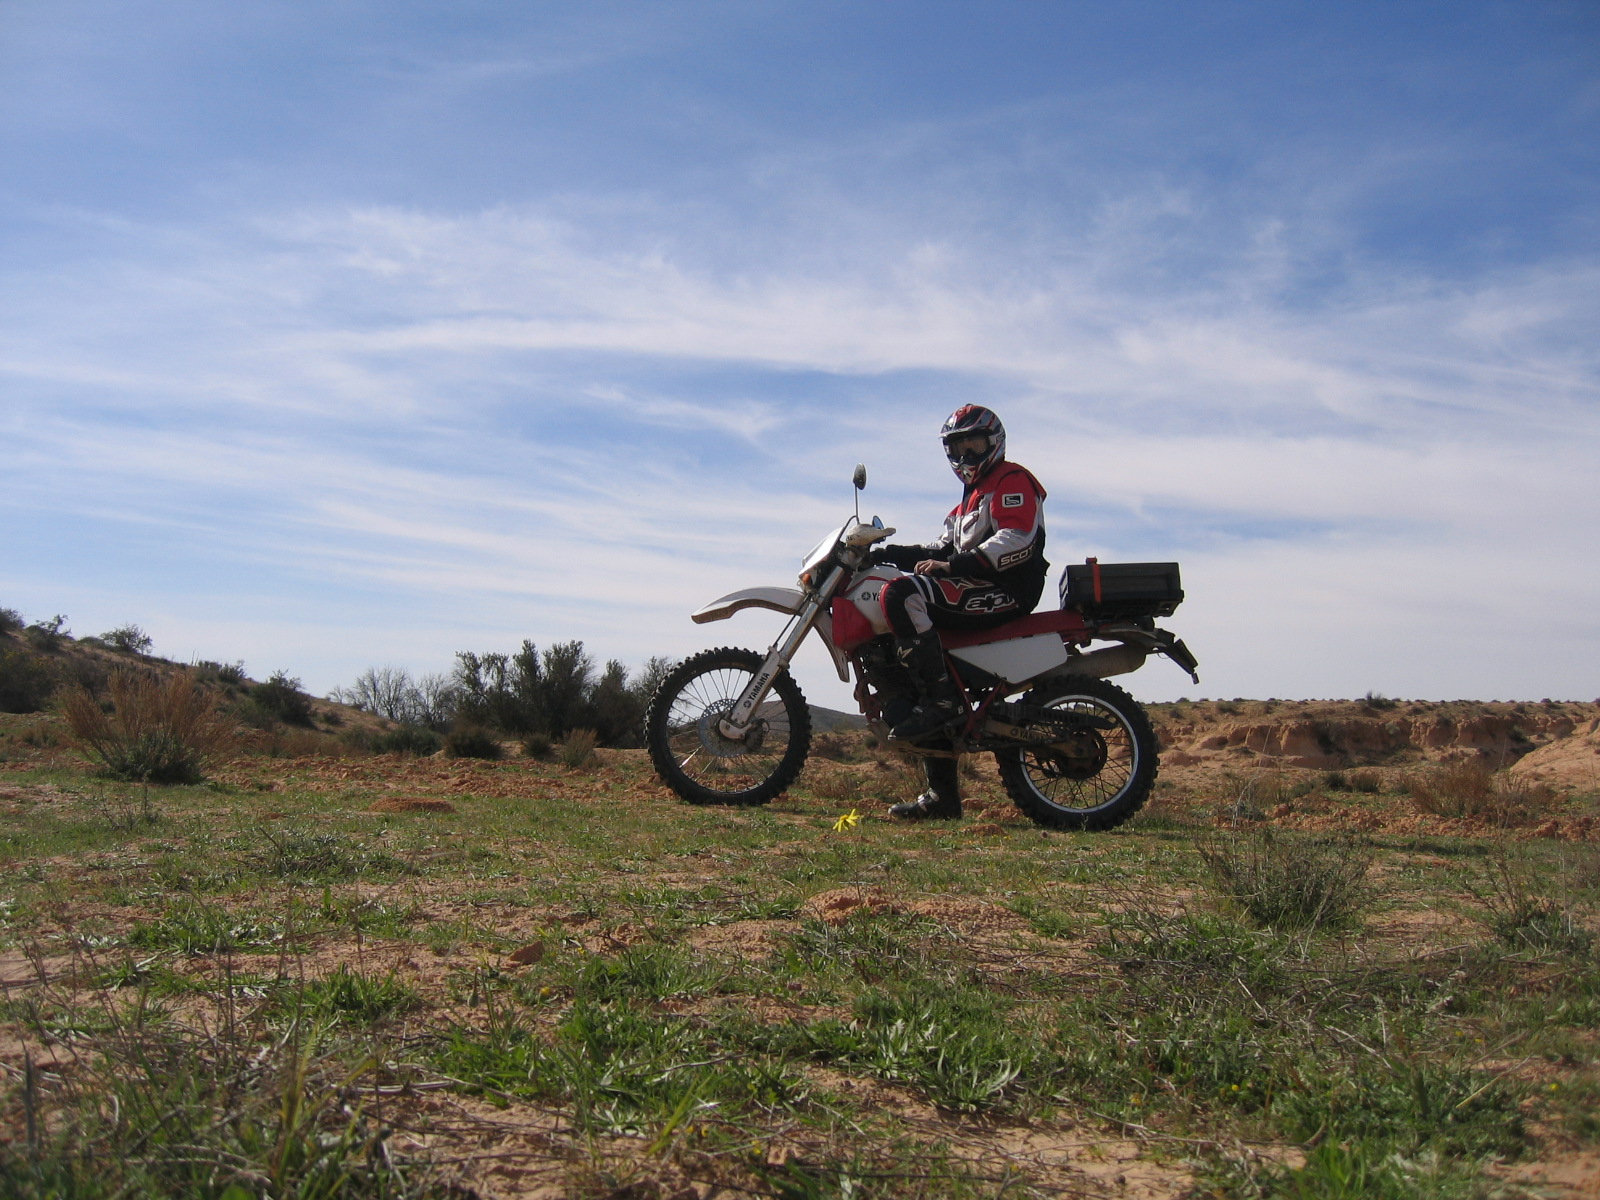 Motorcycle in tunisia near Matmata comming from Douz.